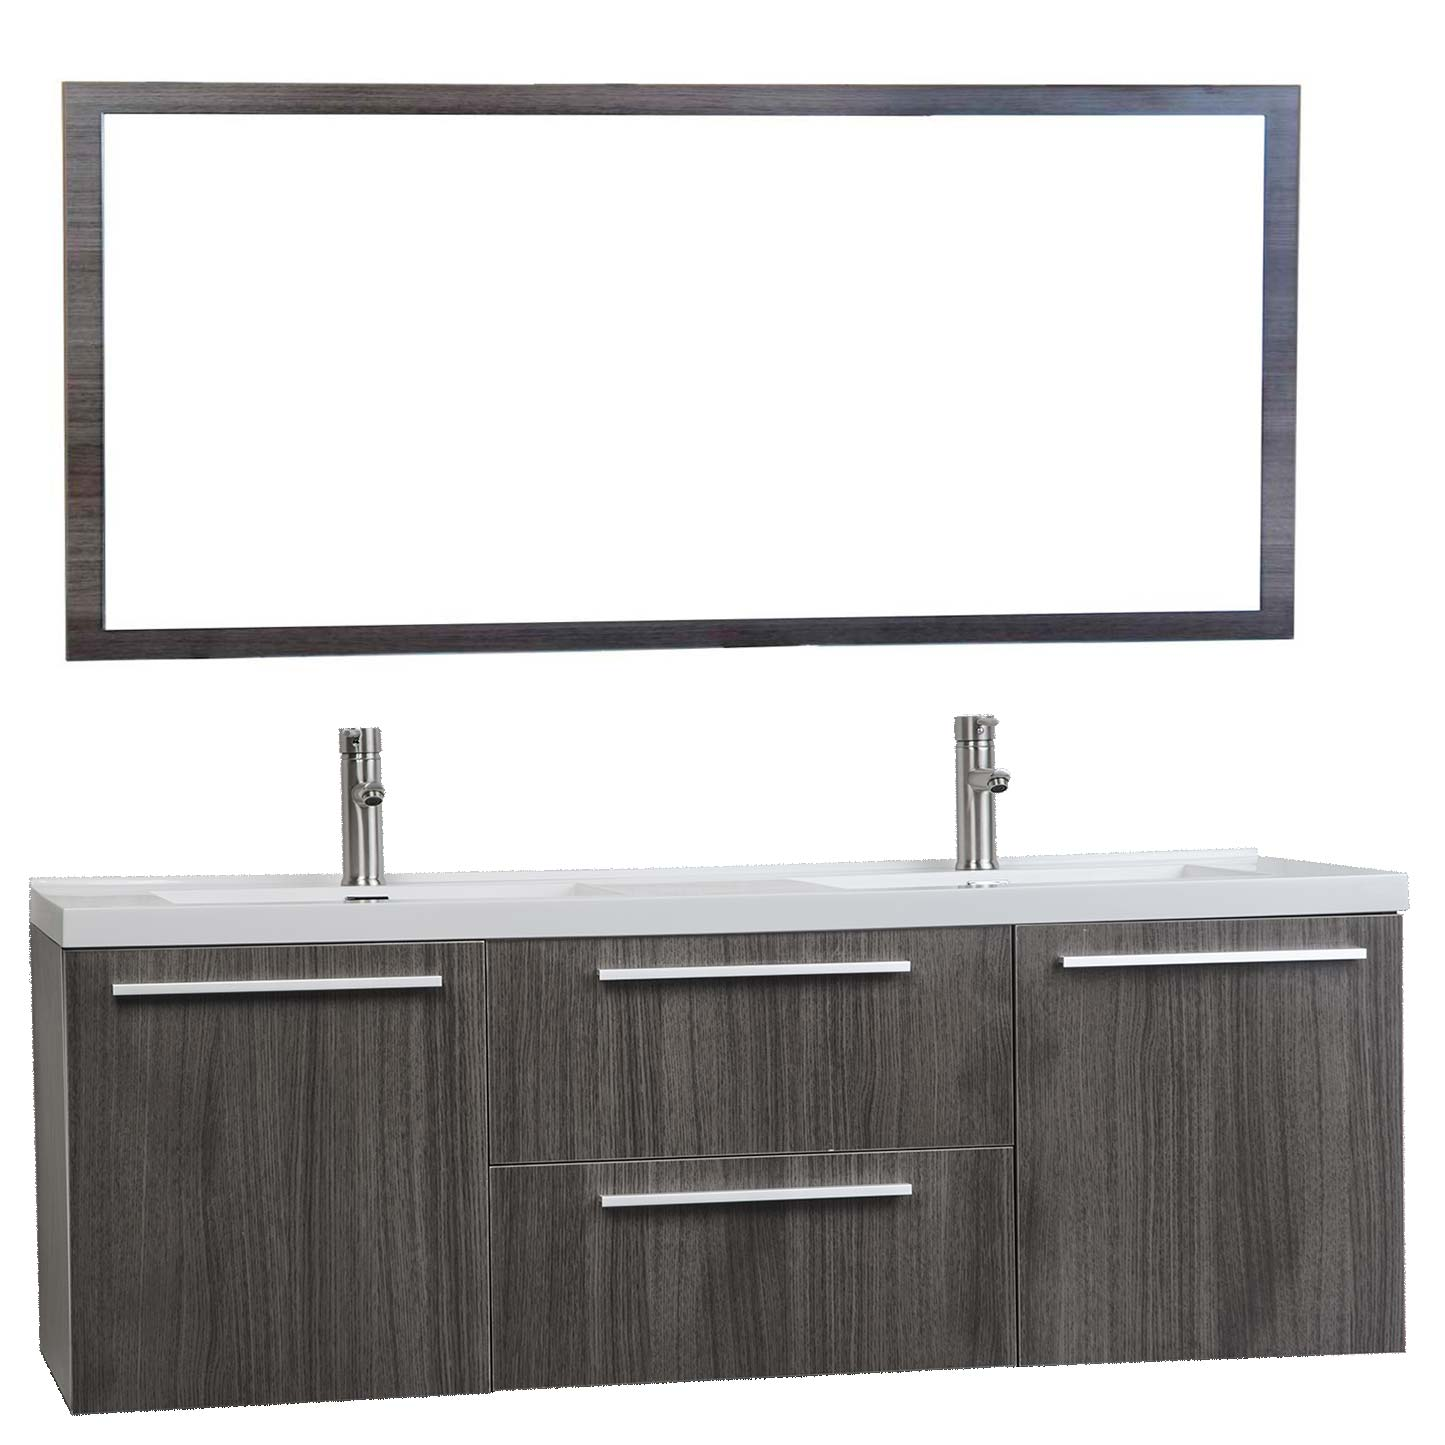 Buy 59 Inch Wall Mounted Modern Double Vanity in Grey Oak TN-NT1500D Bathroom Vanities San Jose on bathroom countertop materials, bathroom tubs, bathroom lights, bathroom cabinets, bathroom backsplash, bathroom sinks, bathroom tile, bathroom consoles, bathroom hand towel holder, bathroom flooring, bathroom remodel, bathroom exhaust fans, bathroom ideas, bathroom design, bathroom colors, bathroom window treatments, bathroom makeovers, bathroom wainscoting, bathroom toilets, bathroom logo,